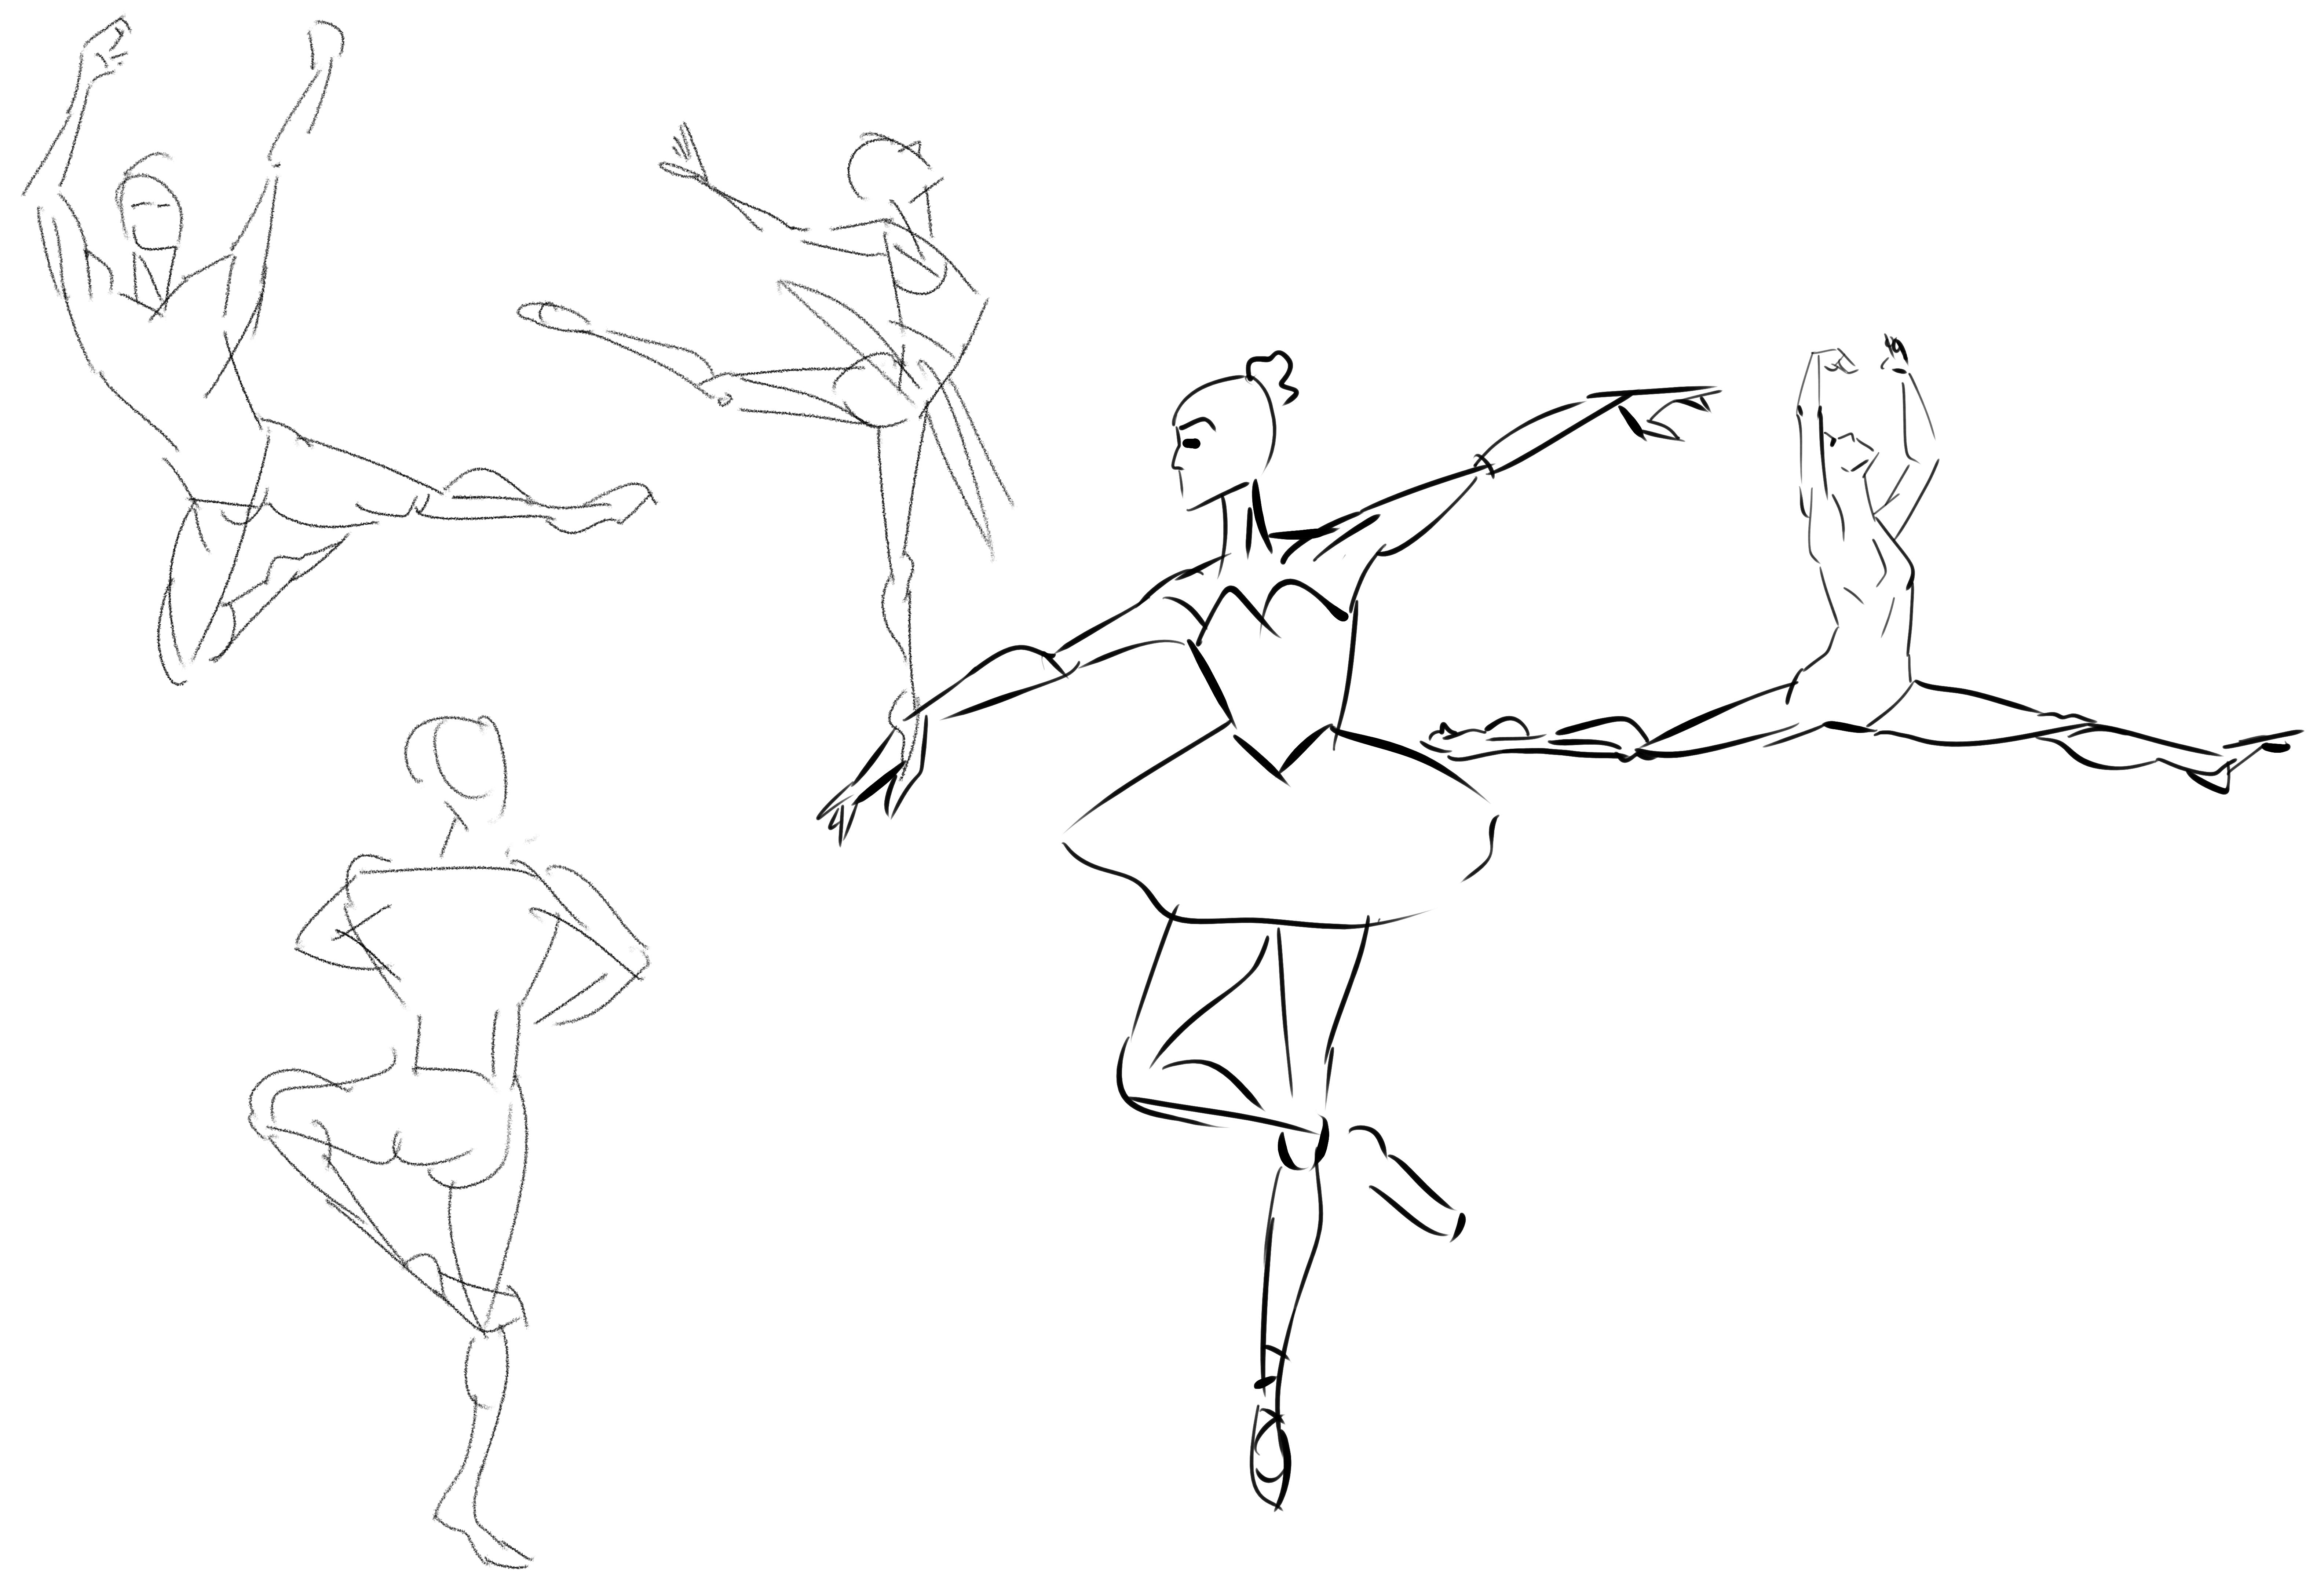 6336x4288 Scribble Gesture Stick Figure Drawings